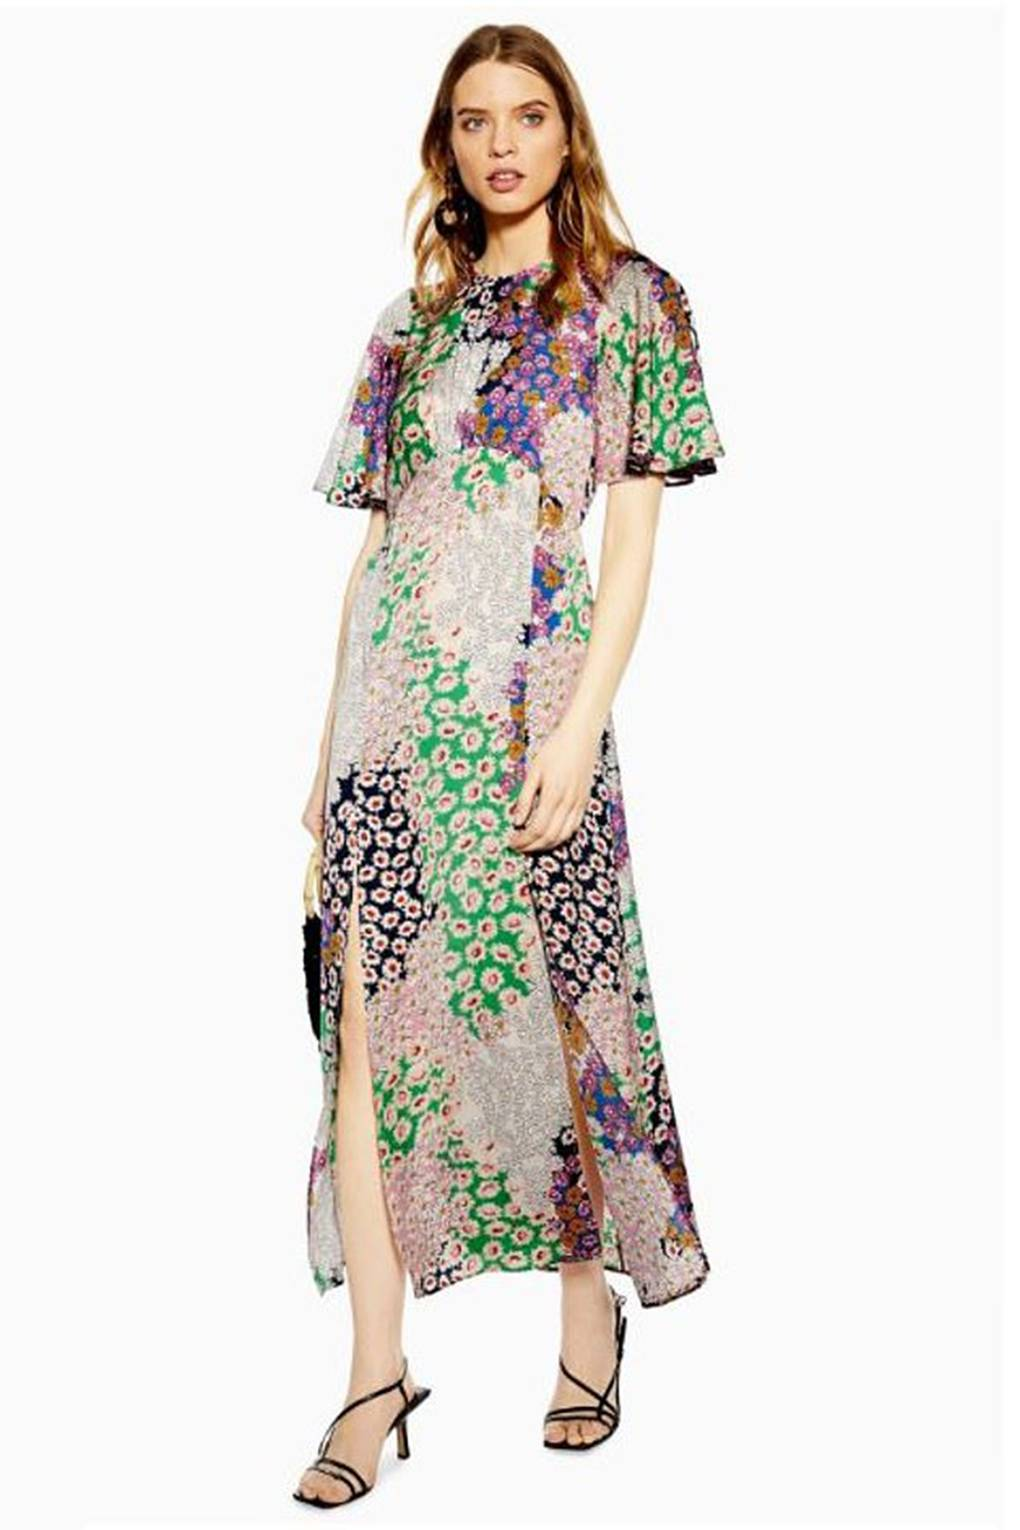 71cf4510fc Is This Topshop Austin Floral Print Midi Dress The It Dress Of 2019? |  Glamour UK